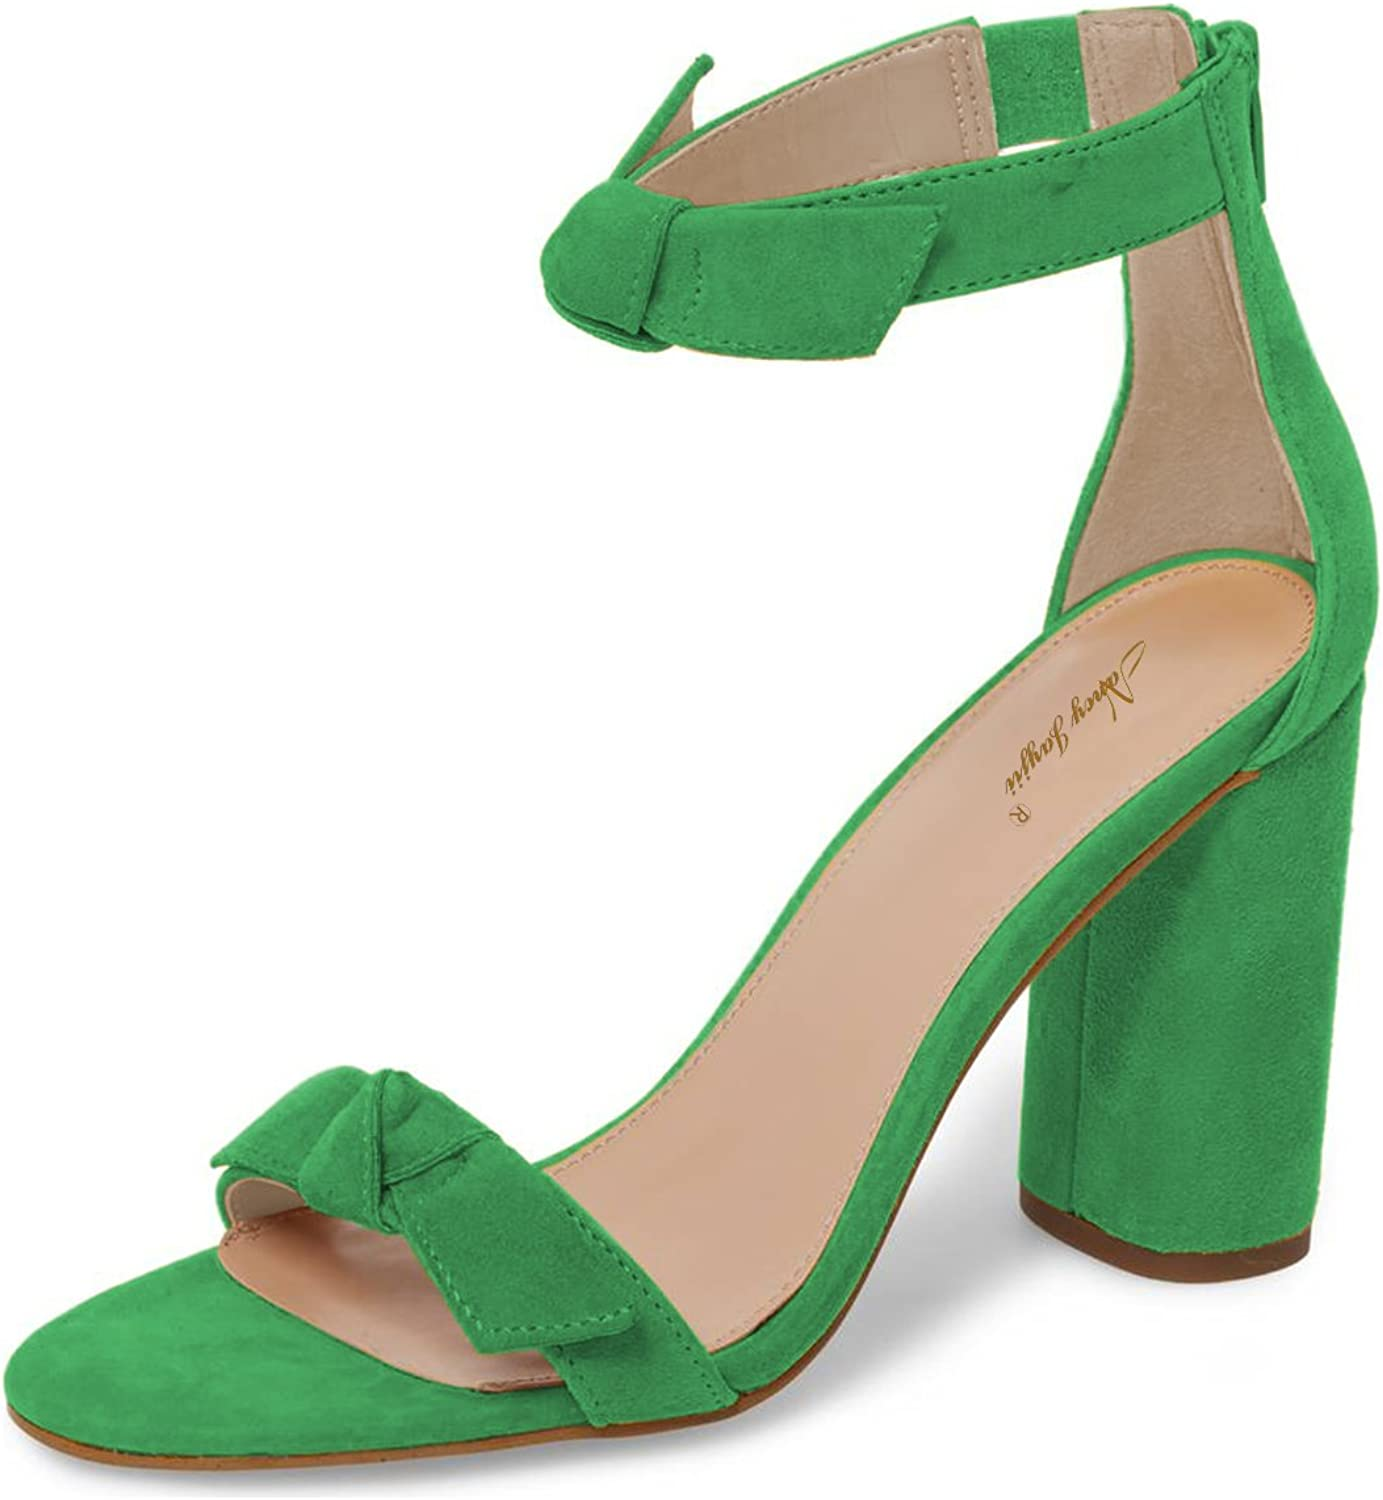 NJPU Women Chunky High Heel Pumps Ankle Strap Open Toe Sandals Evening Dress Dance shoes with Bow